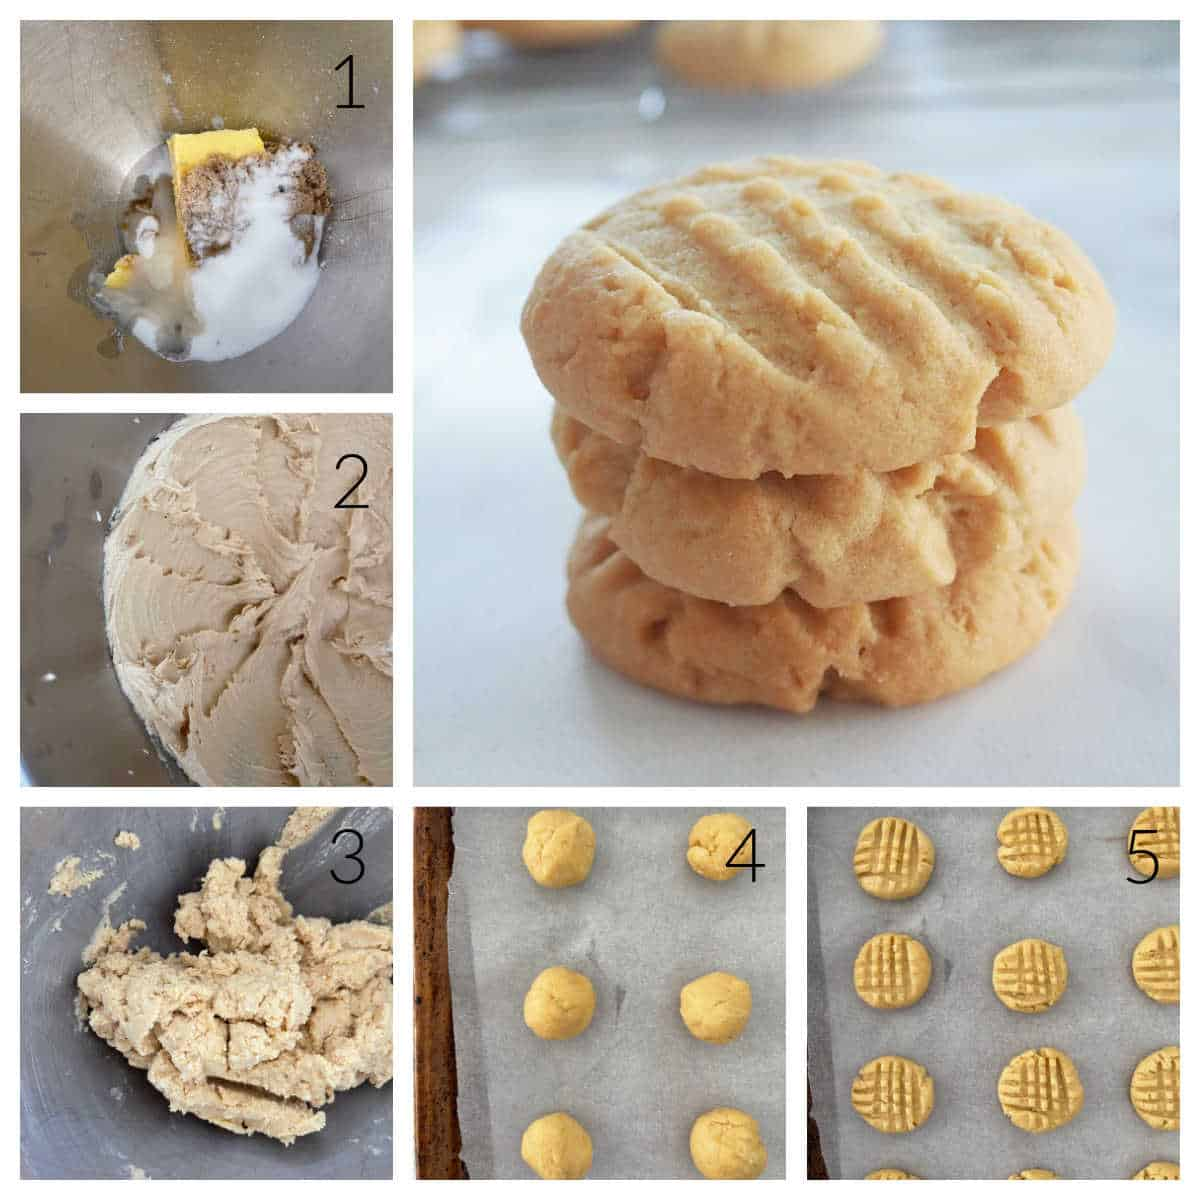 Collage of steps showing how to make Peanut Butter Biscuits